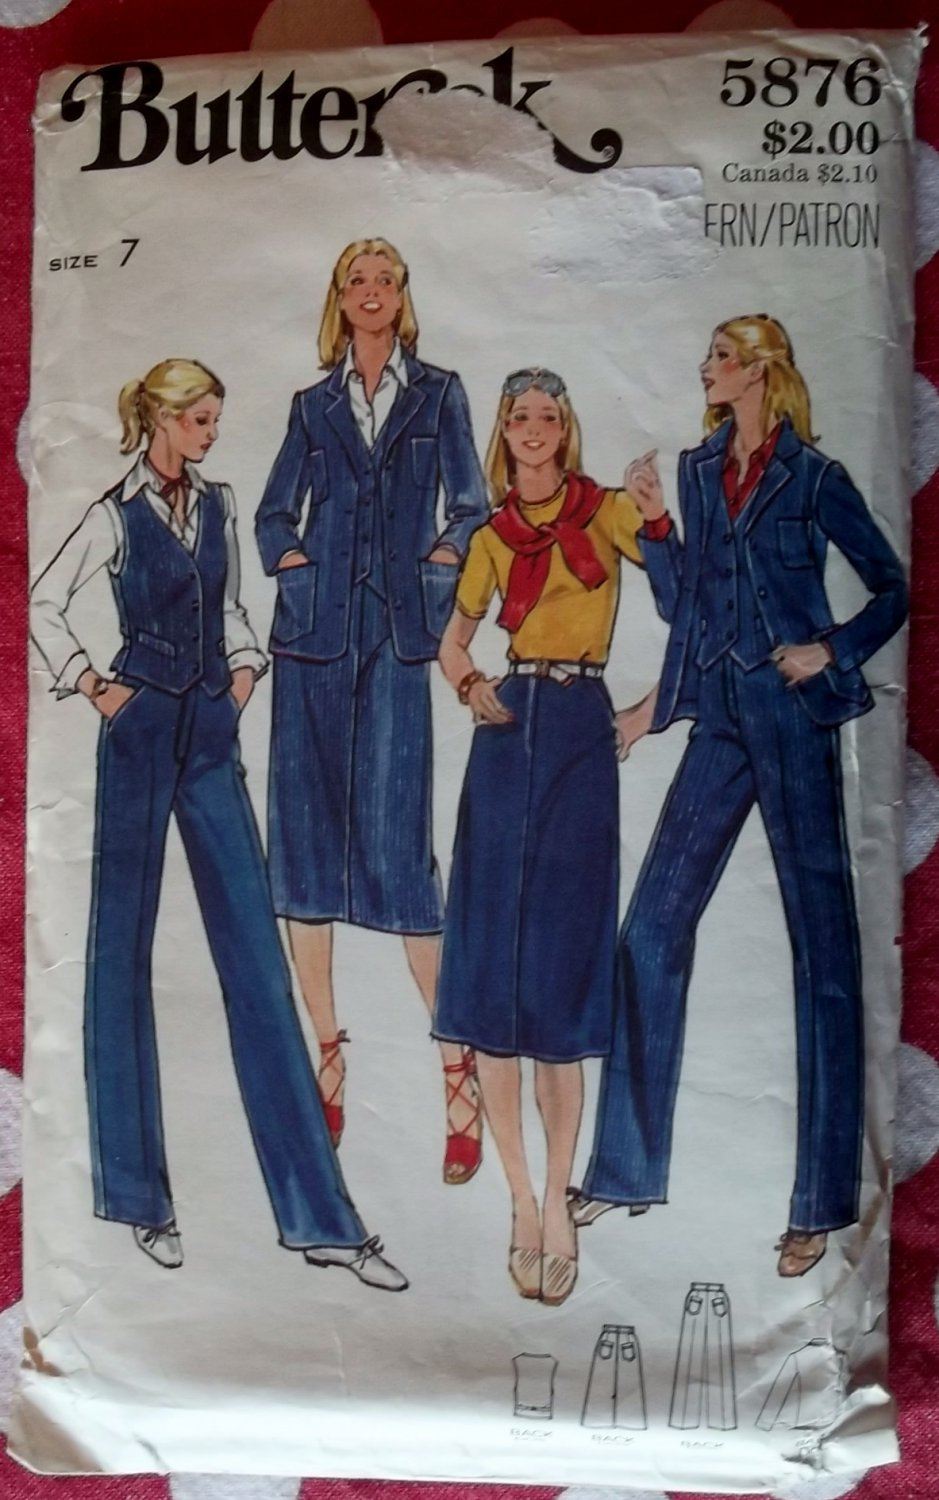 Vintage Butterick 5876 Junior Vest, Jacket, Skirt & Pants Pattern, Size 7, Uncut